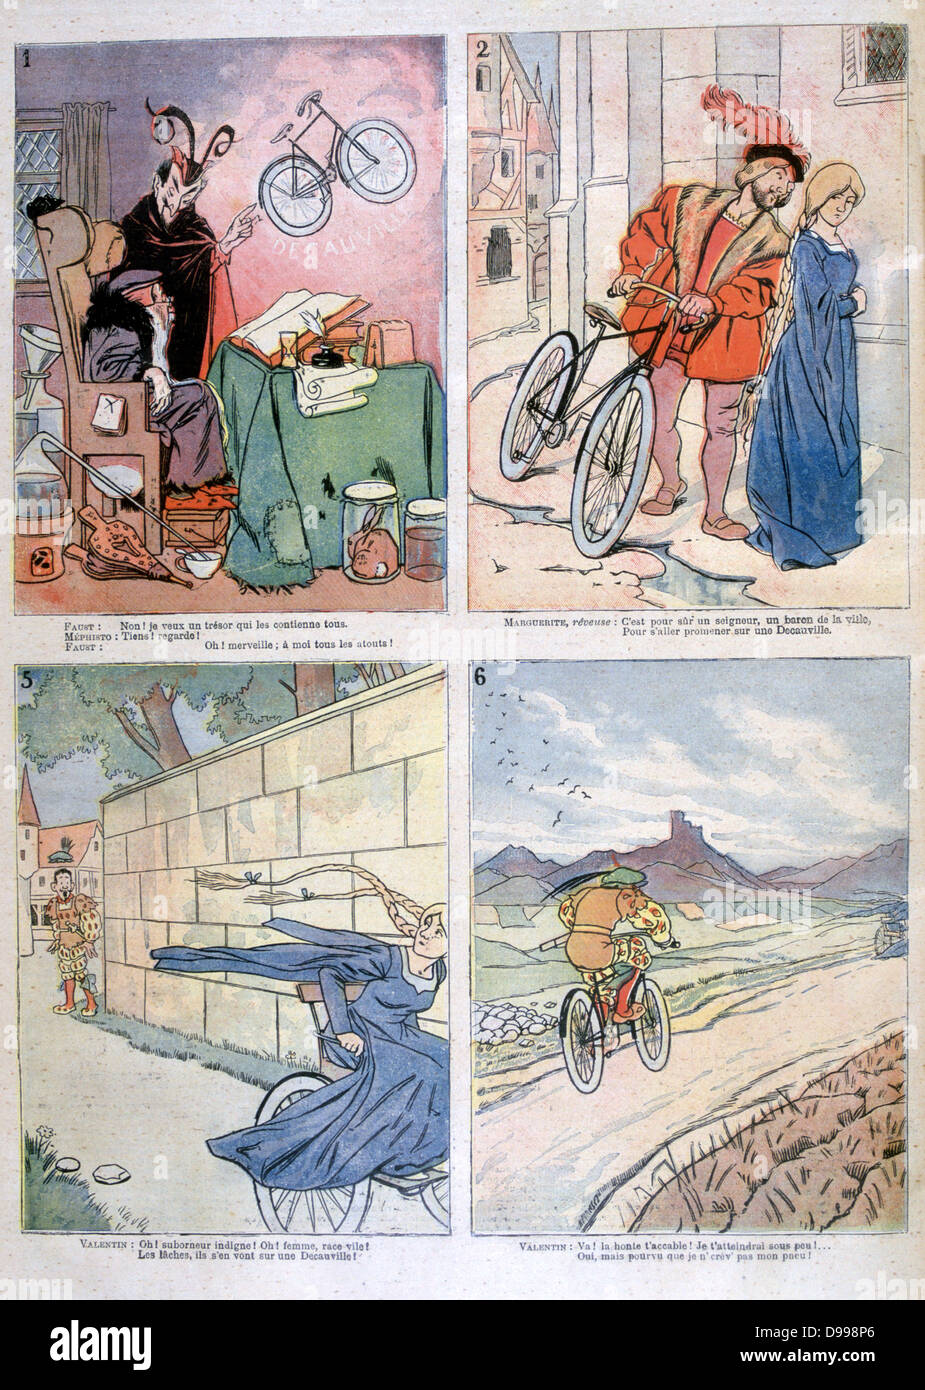 Bicycle applied to the Legend of Faust: From - Temptation by Mephistopheles, A rejuvinated Strauss courting Marguerite, Stock Photo